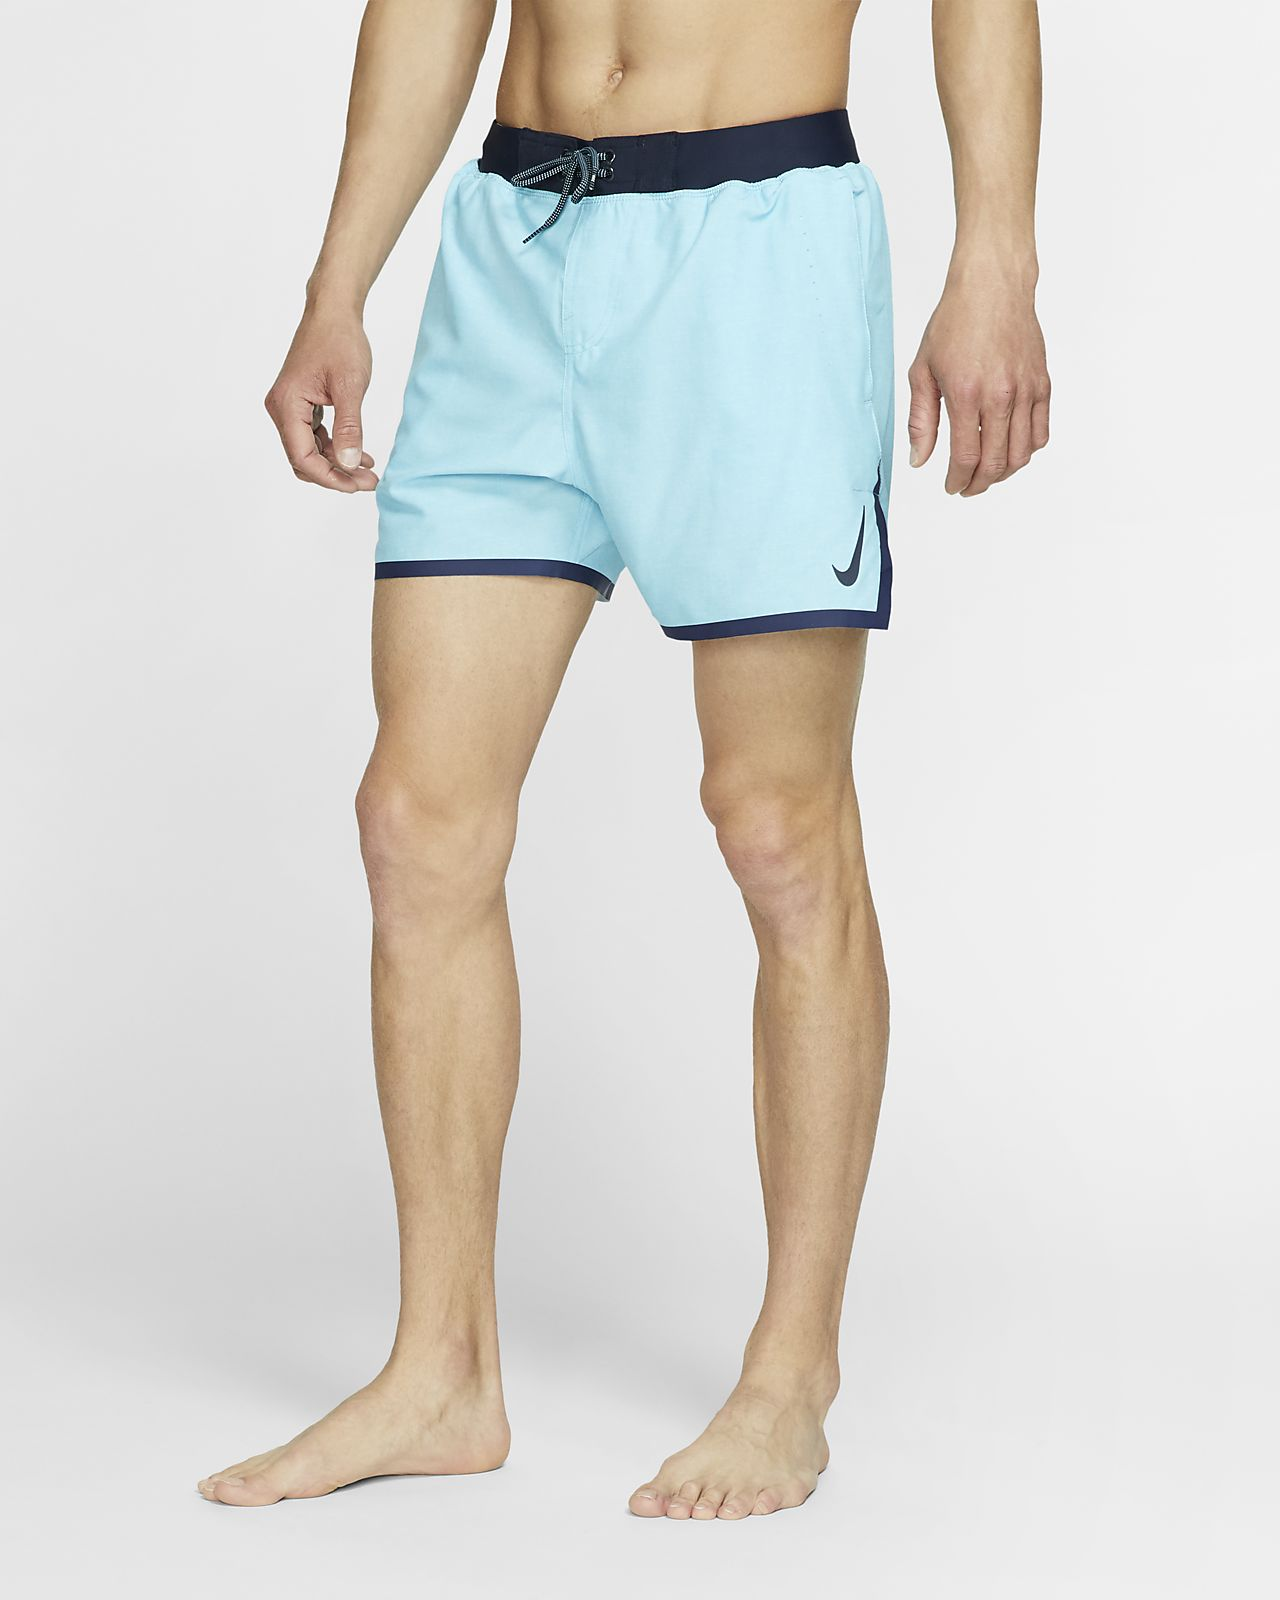 Nike Linen Blade Volley Men's 13cm (approx.) Shorts